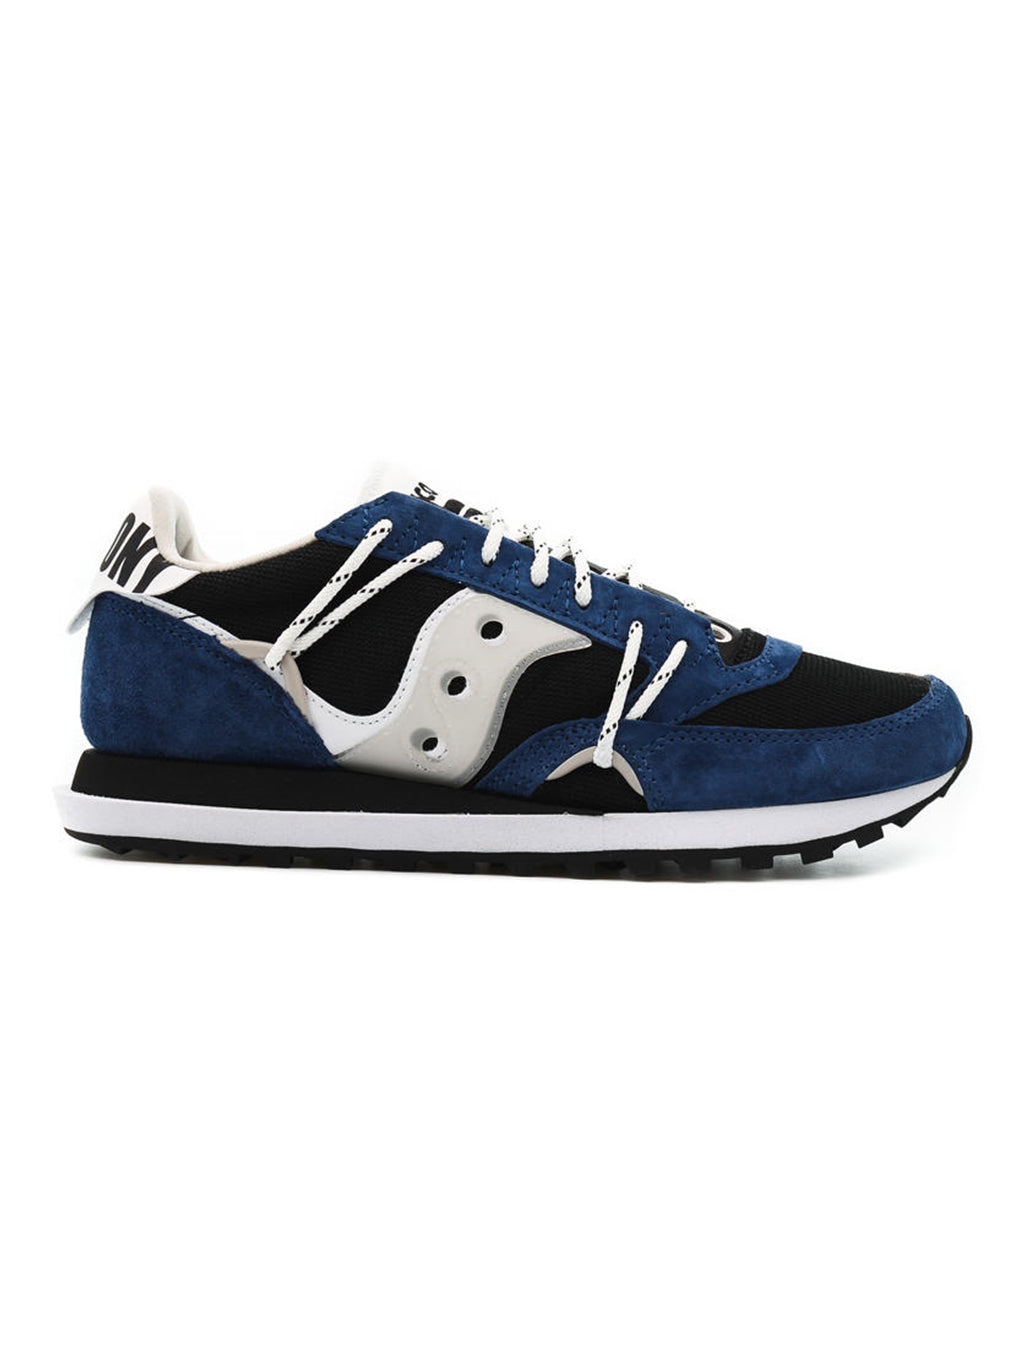 Navy & White Jazz DST Sneakers